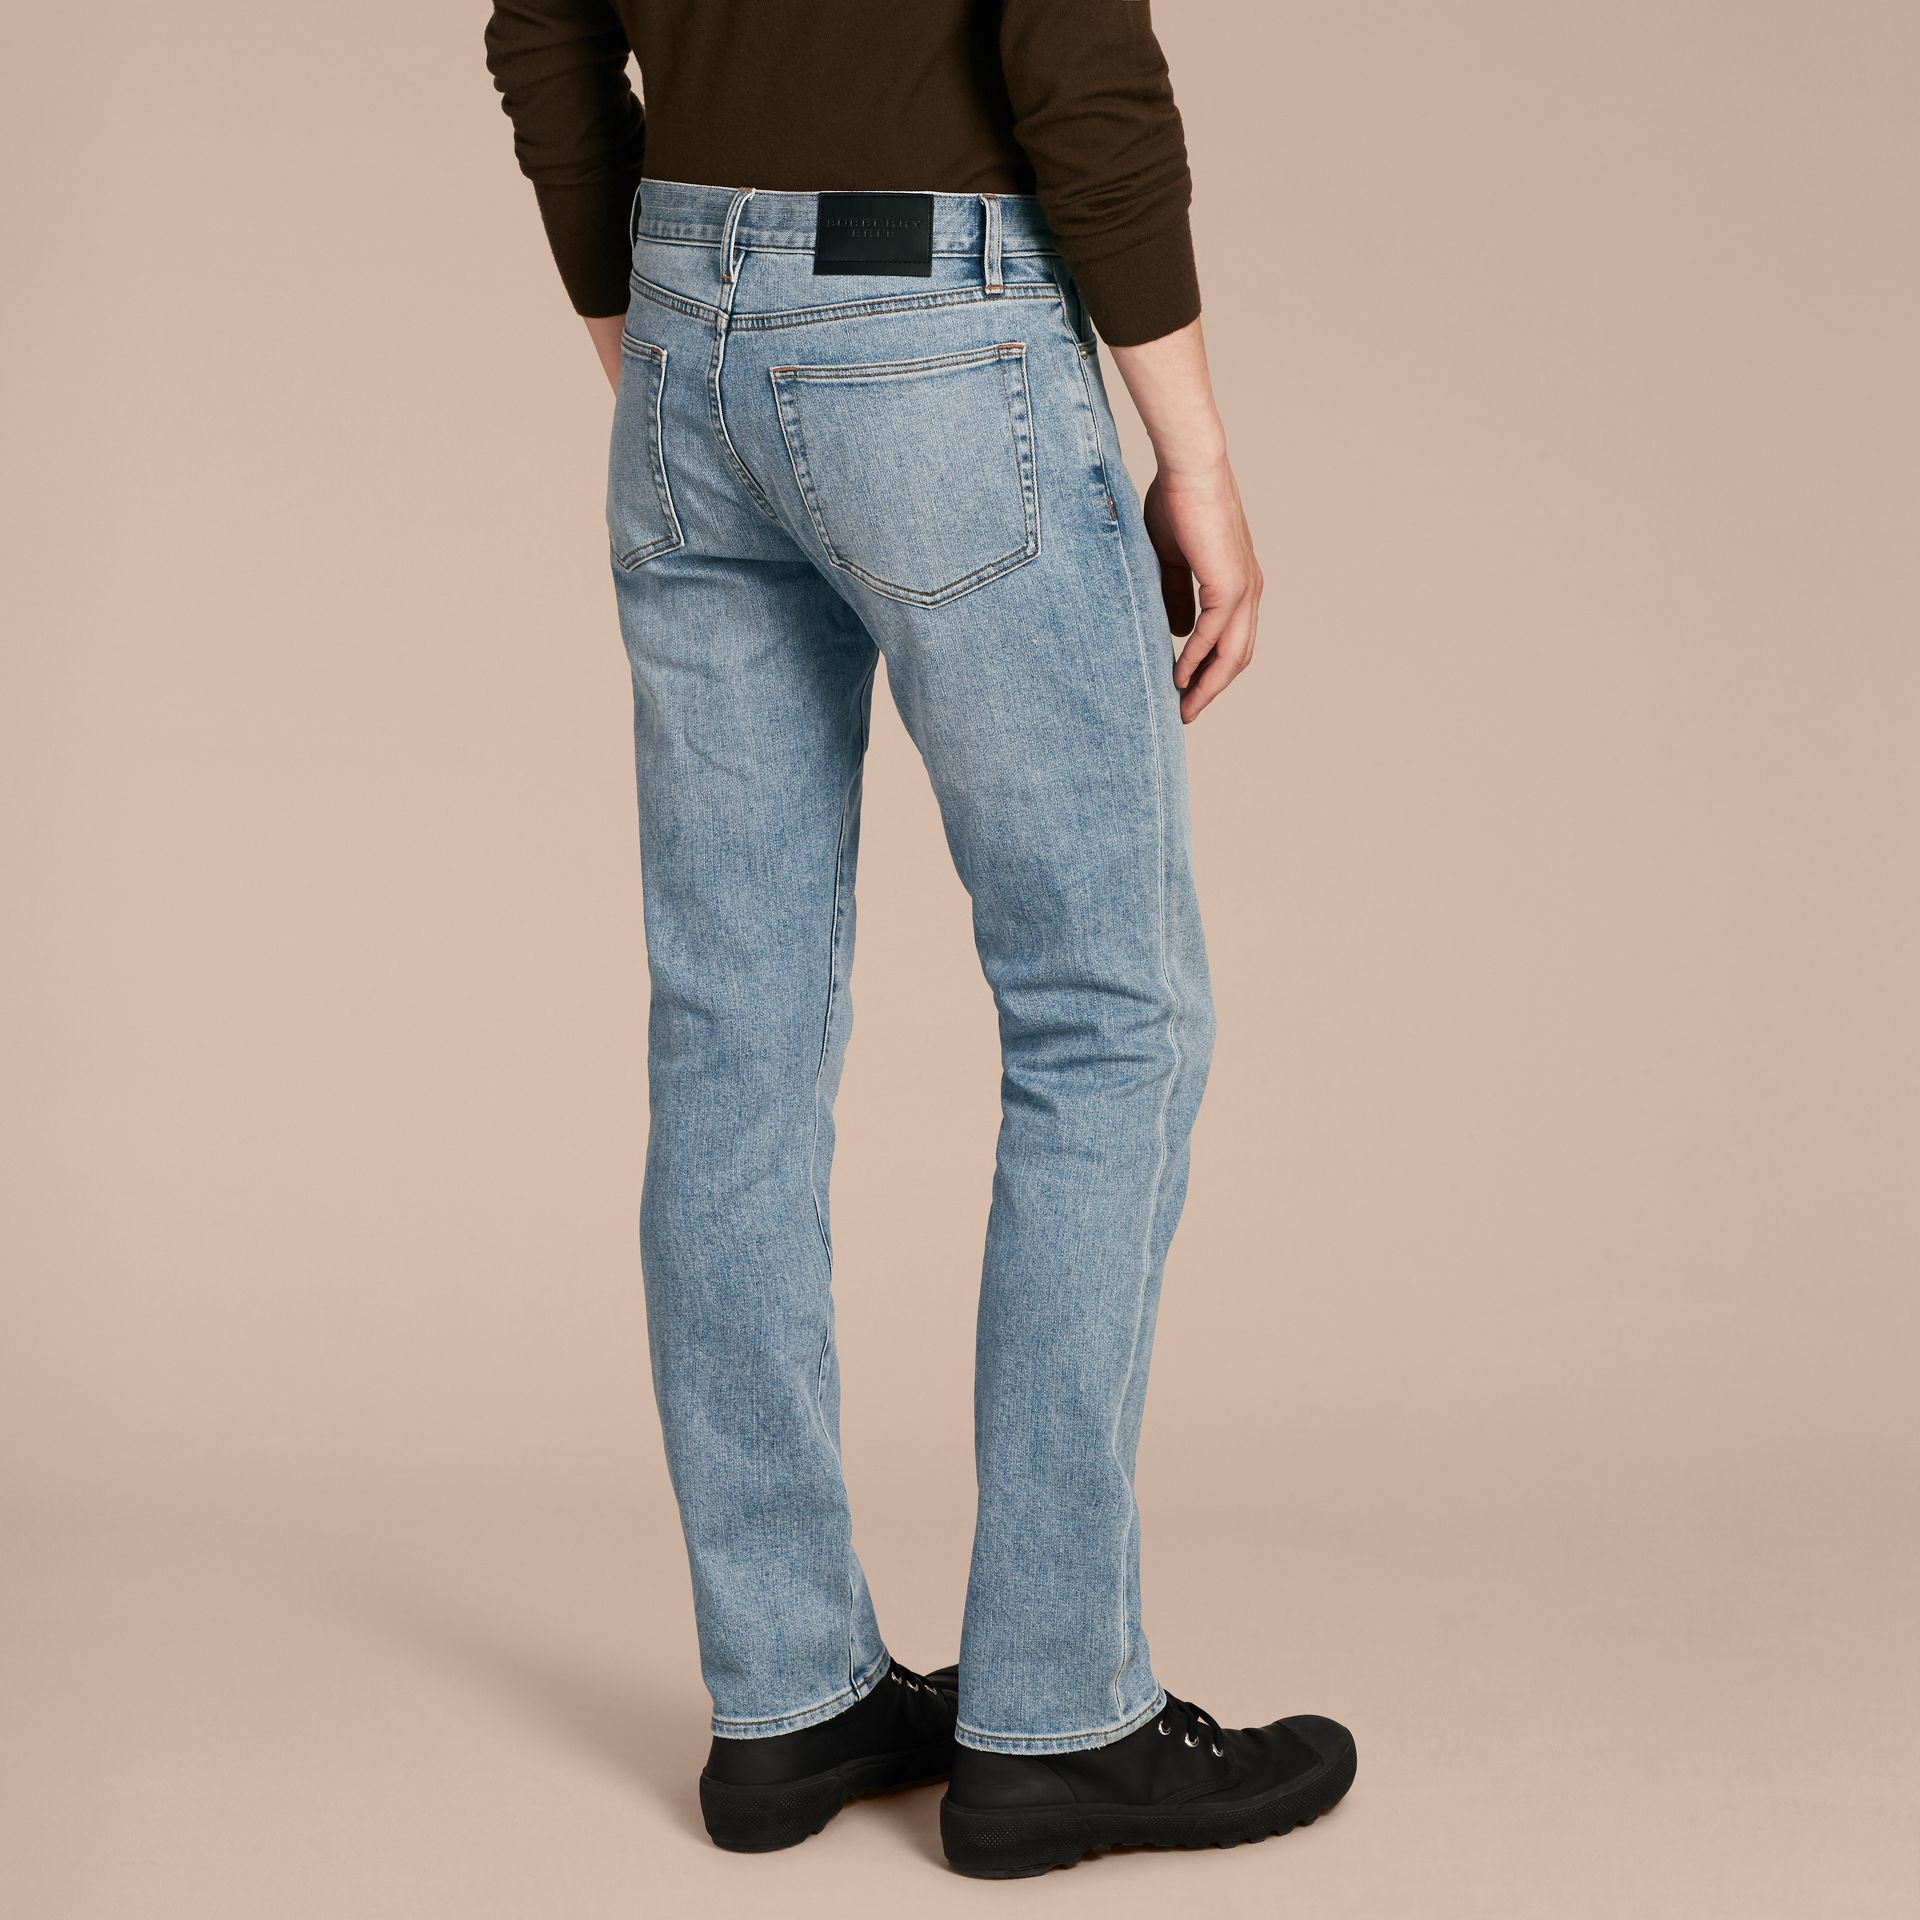 Jean stretch de coupe droite en denim japonais ultra-confortable - Homme | Burberry - photo de la galerie 3